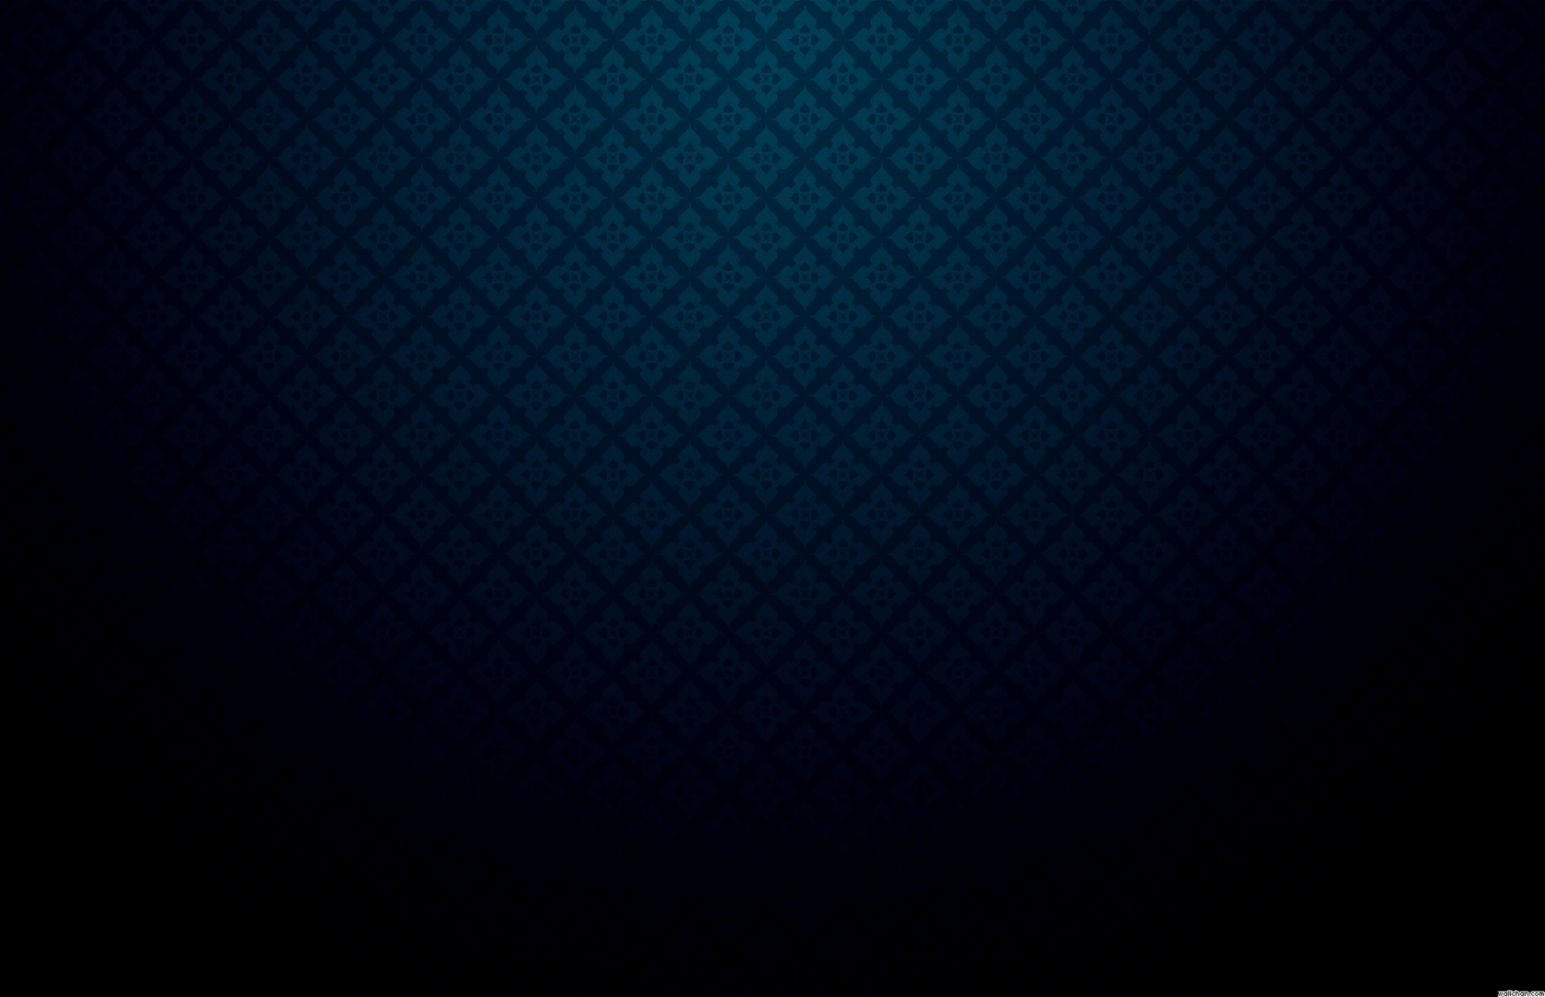 Navy Blue Background Wallpaper | All HD Wallpapers Dark Blue Background Hd